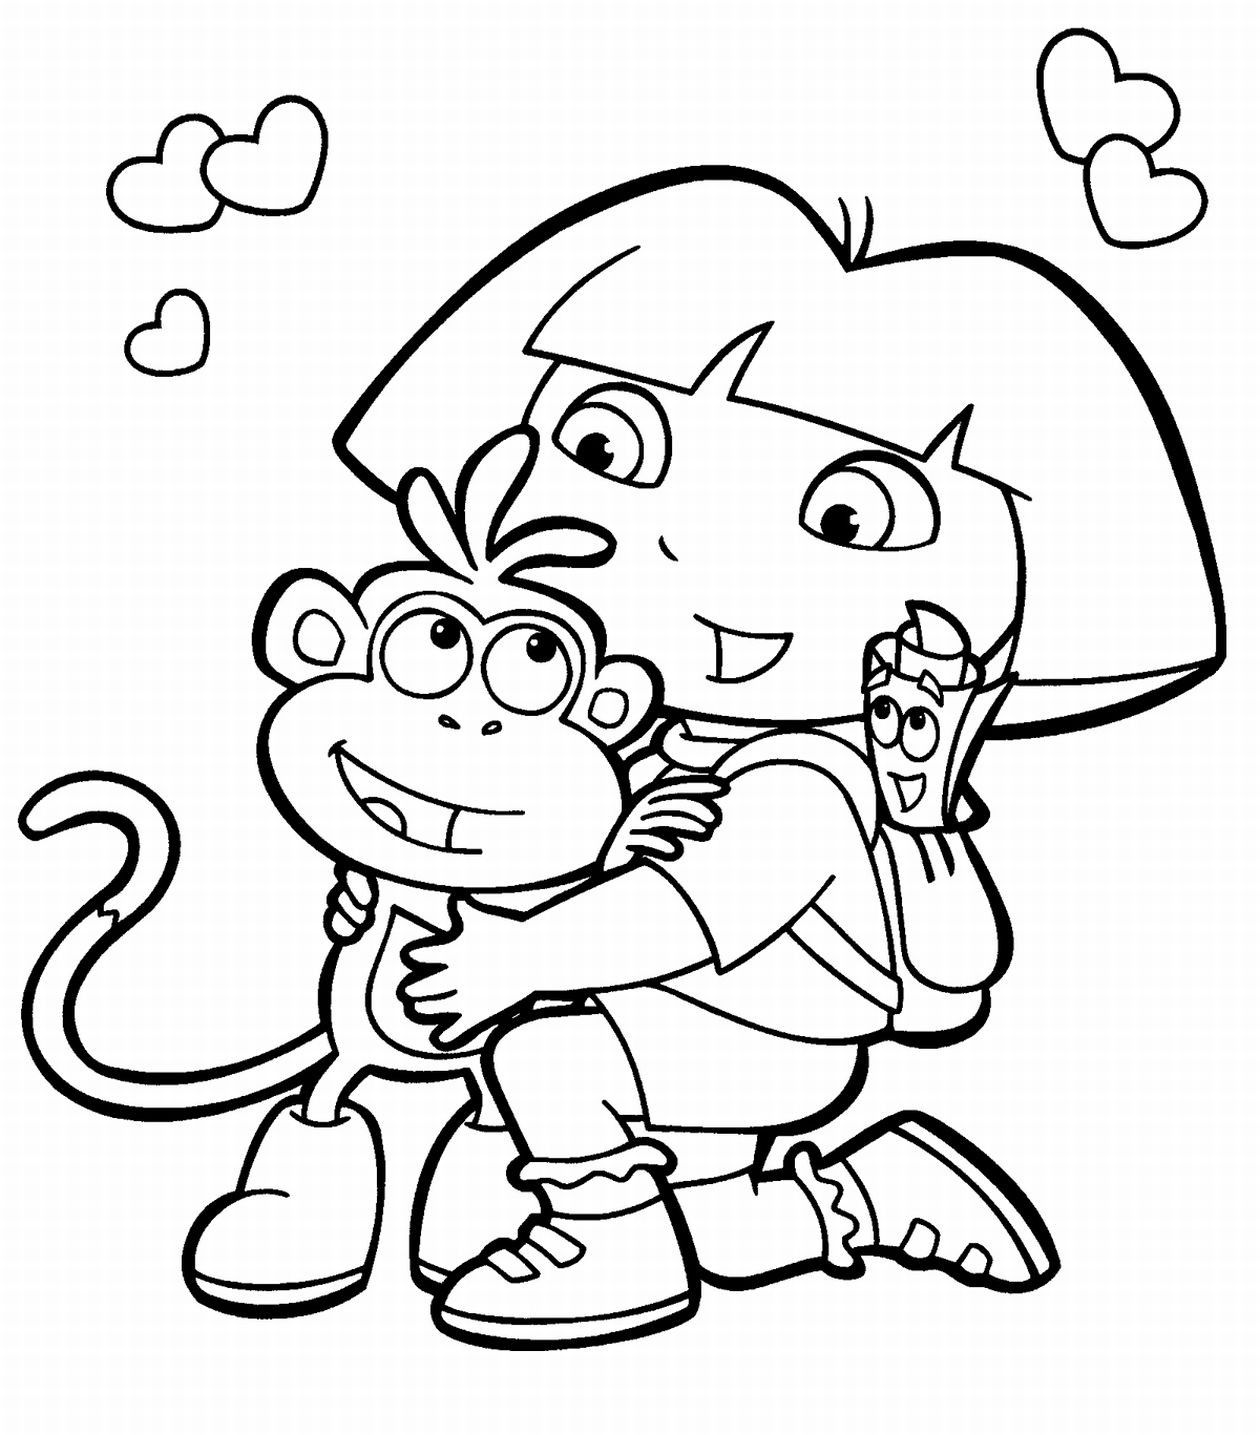 free kids printable coloring pages freecoloringpage info spongebob coloring pages for free free printable coloring pages